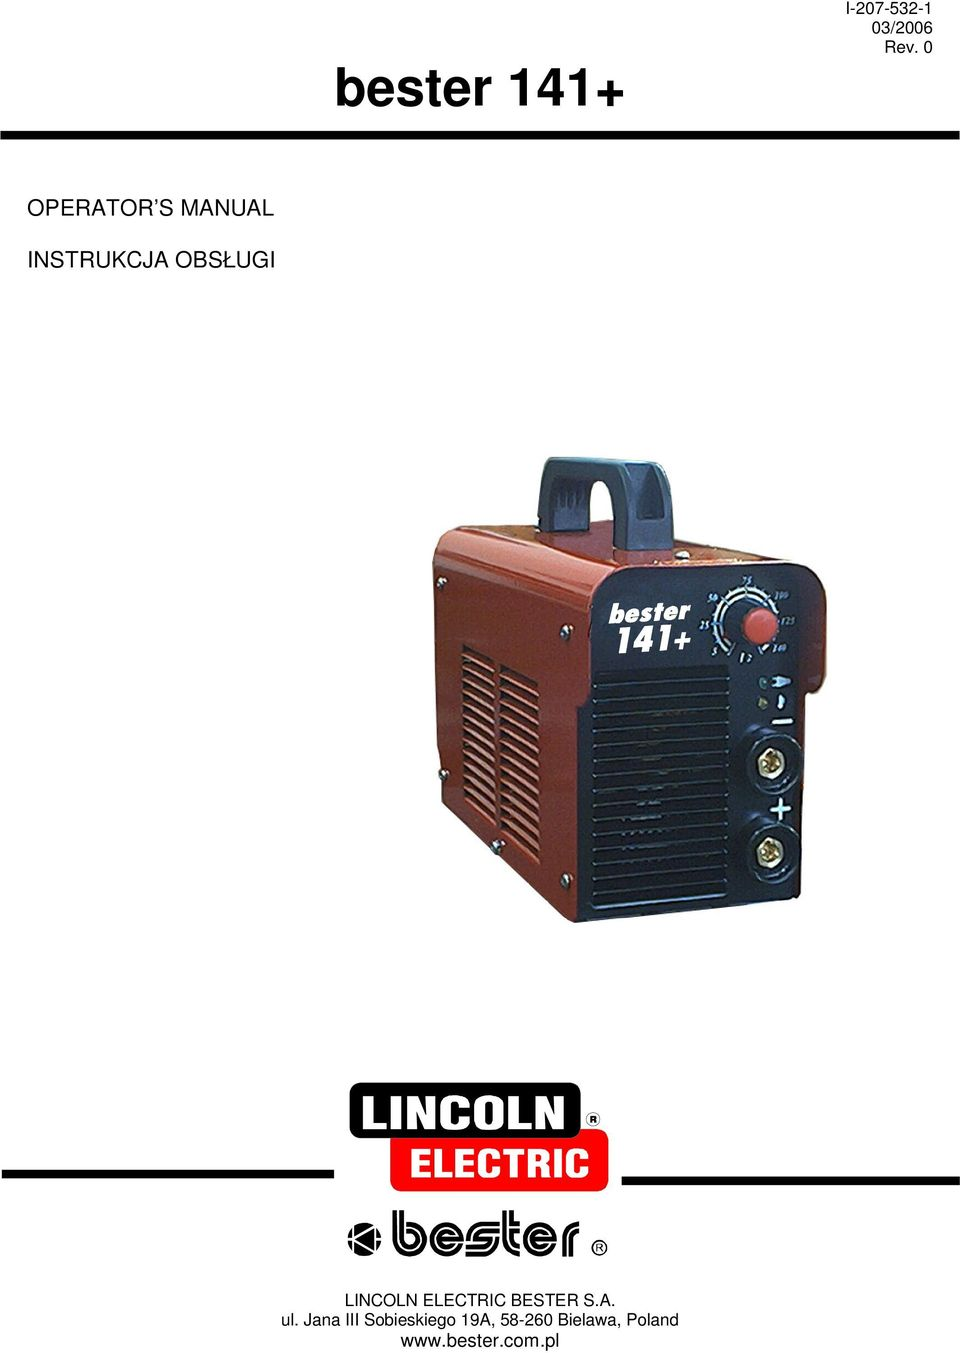 LINCOLN ELECTRIC BESTER S.A. ul.